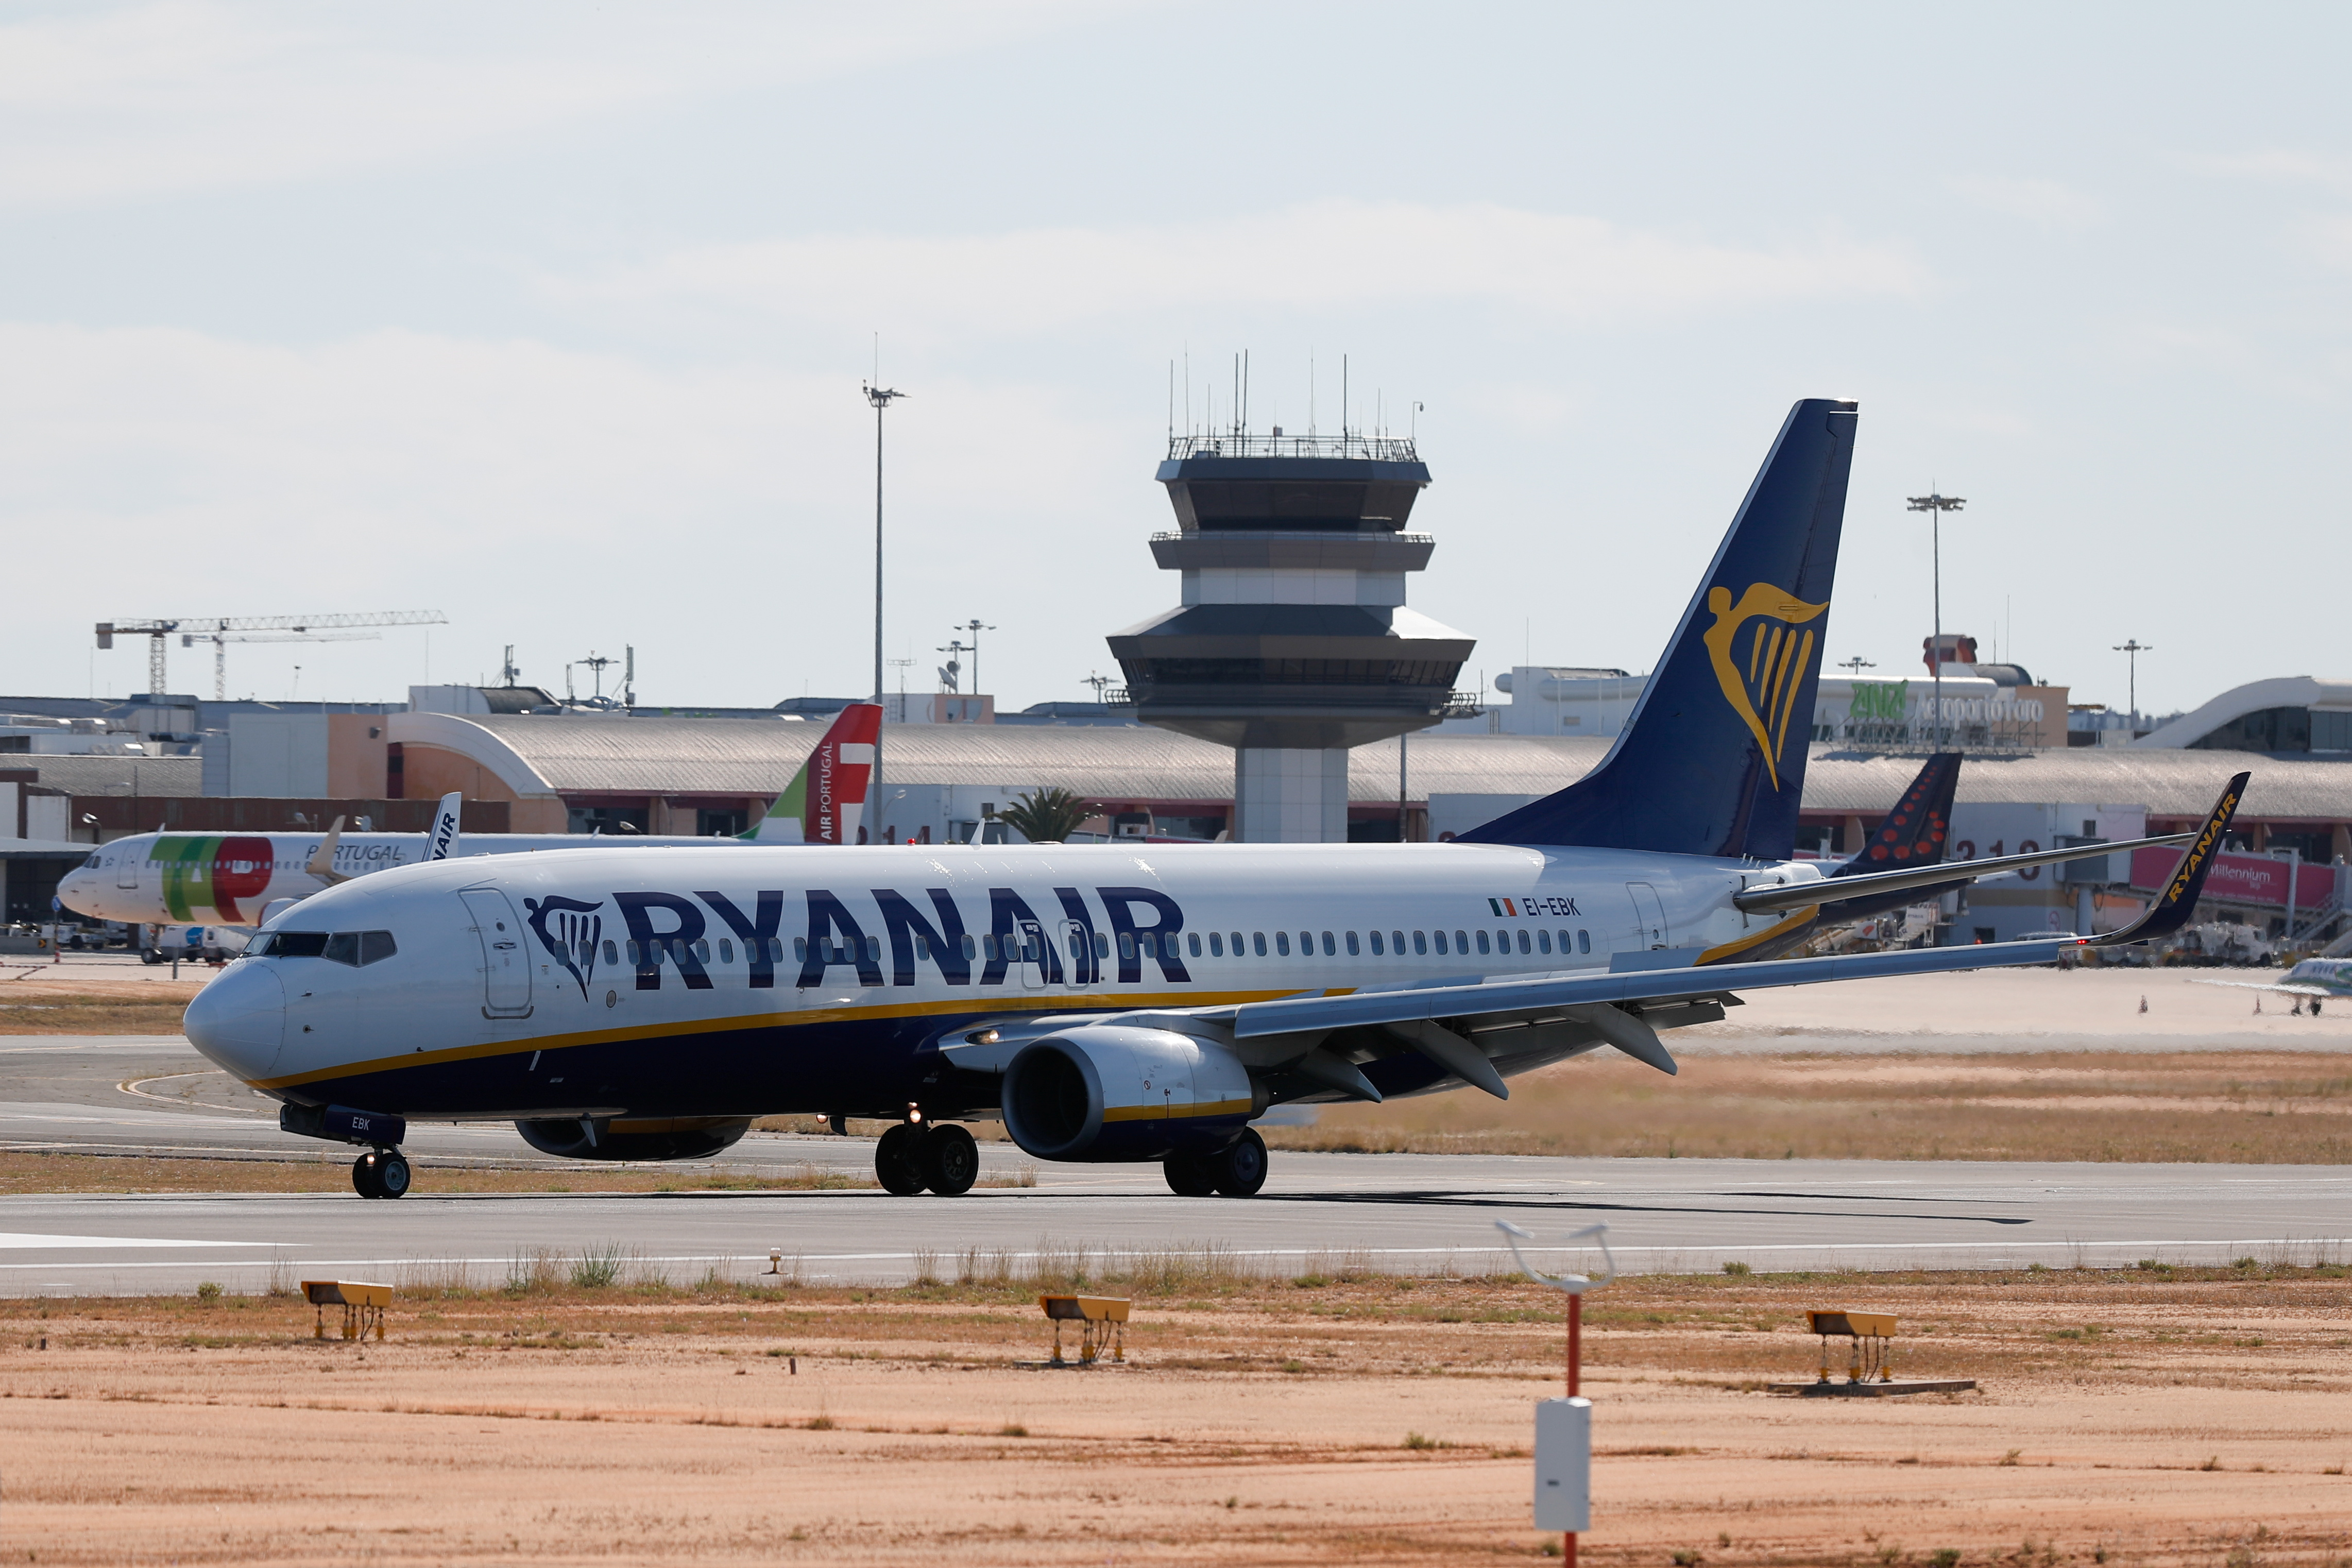 A Ryanair flight from Manchester arrives at Faro Airport on the first day that Britons are allowed to enter Portugal without needing to quarantine, as coronavirus disease (COVID-19) restrictions continue to ease, in Faro, Portugal, May 17, 2021. REUTERS/Pedro Nunes